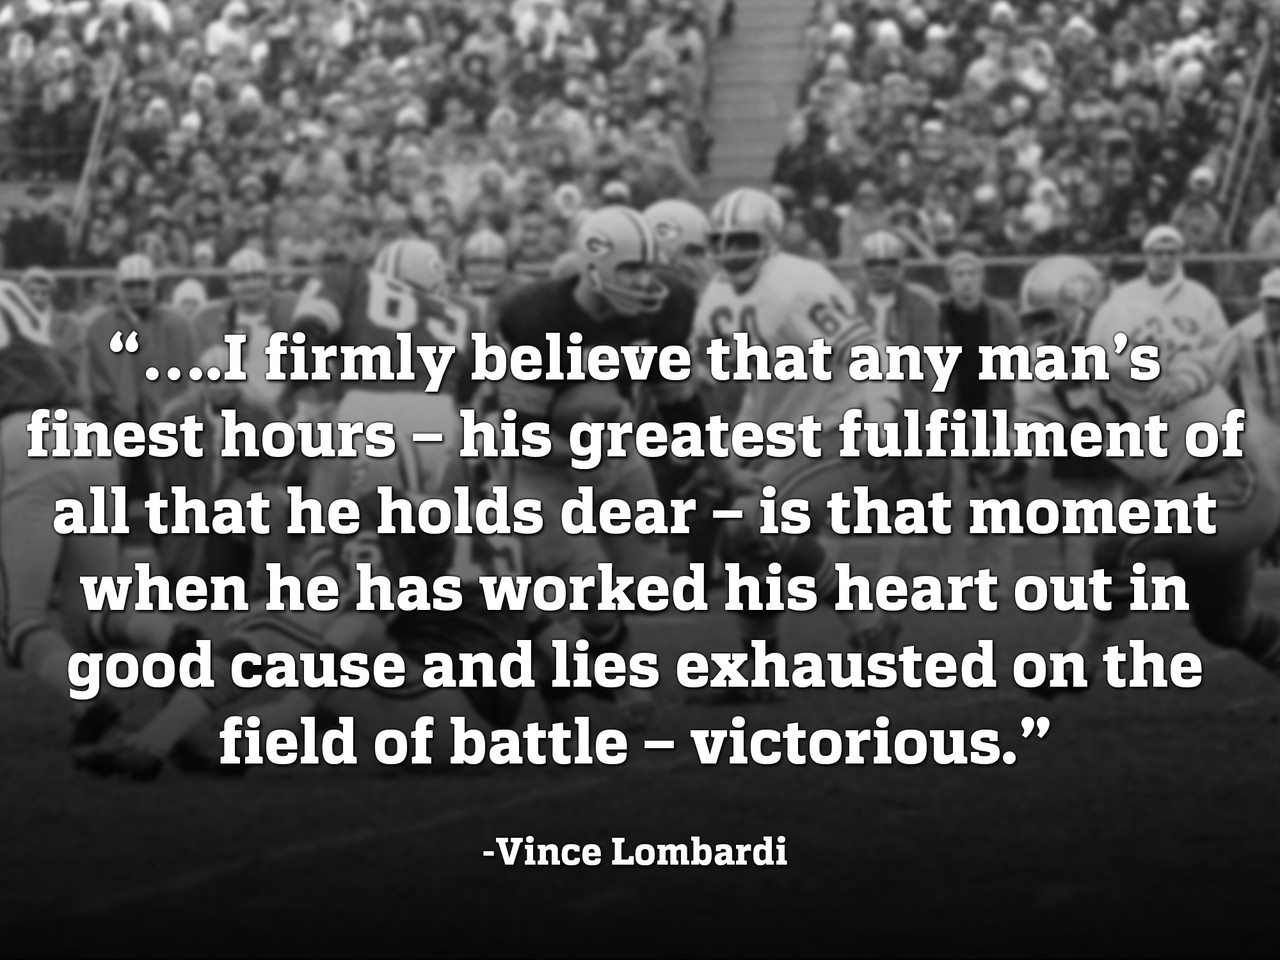 vince lombardi quotes 18